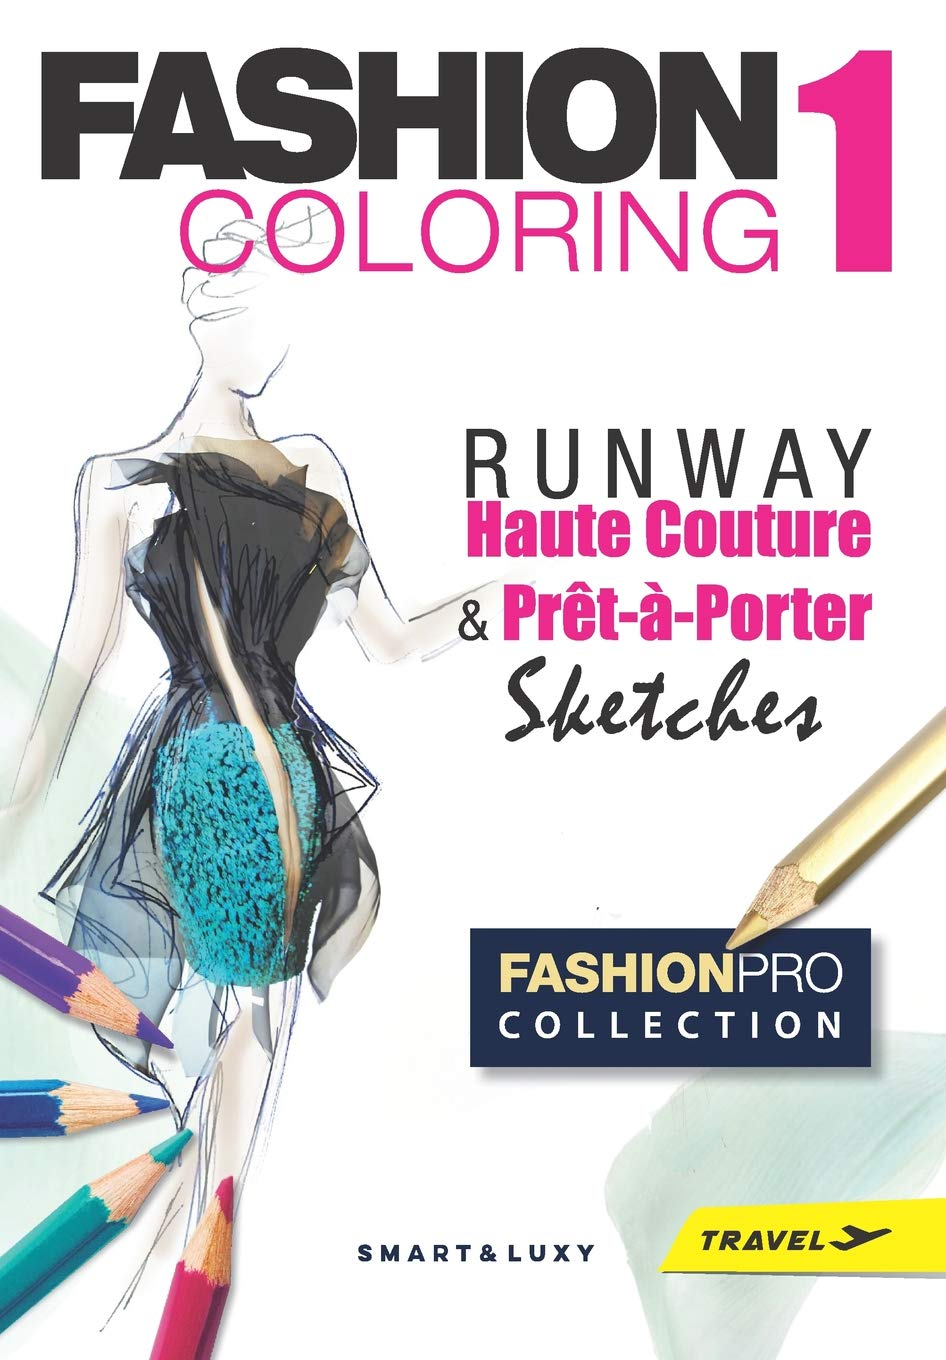 Fashion Coloring Runway Travel Size Haute Couture Pret A Porter Sketches Volume 1 Strasikova Zu 9781543026870 Amazon Com Books